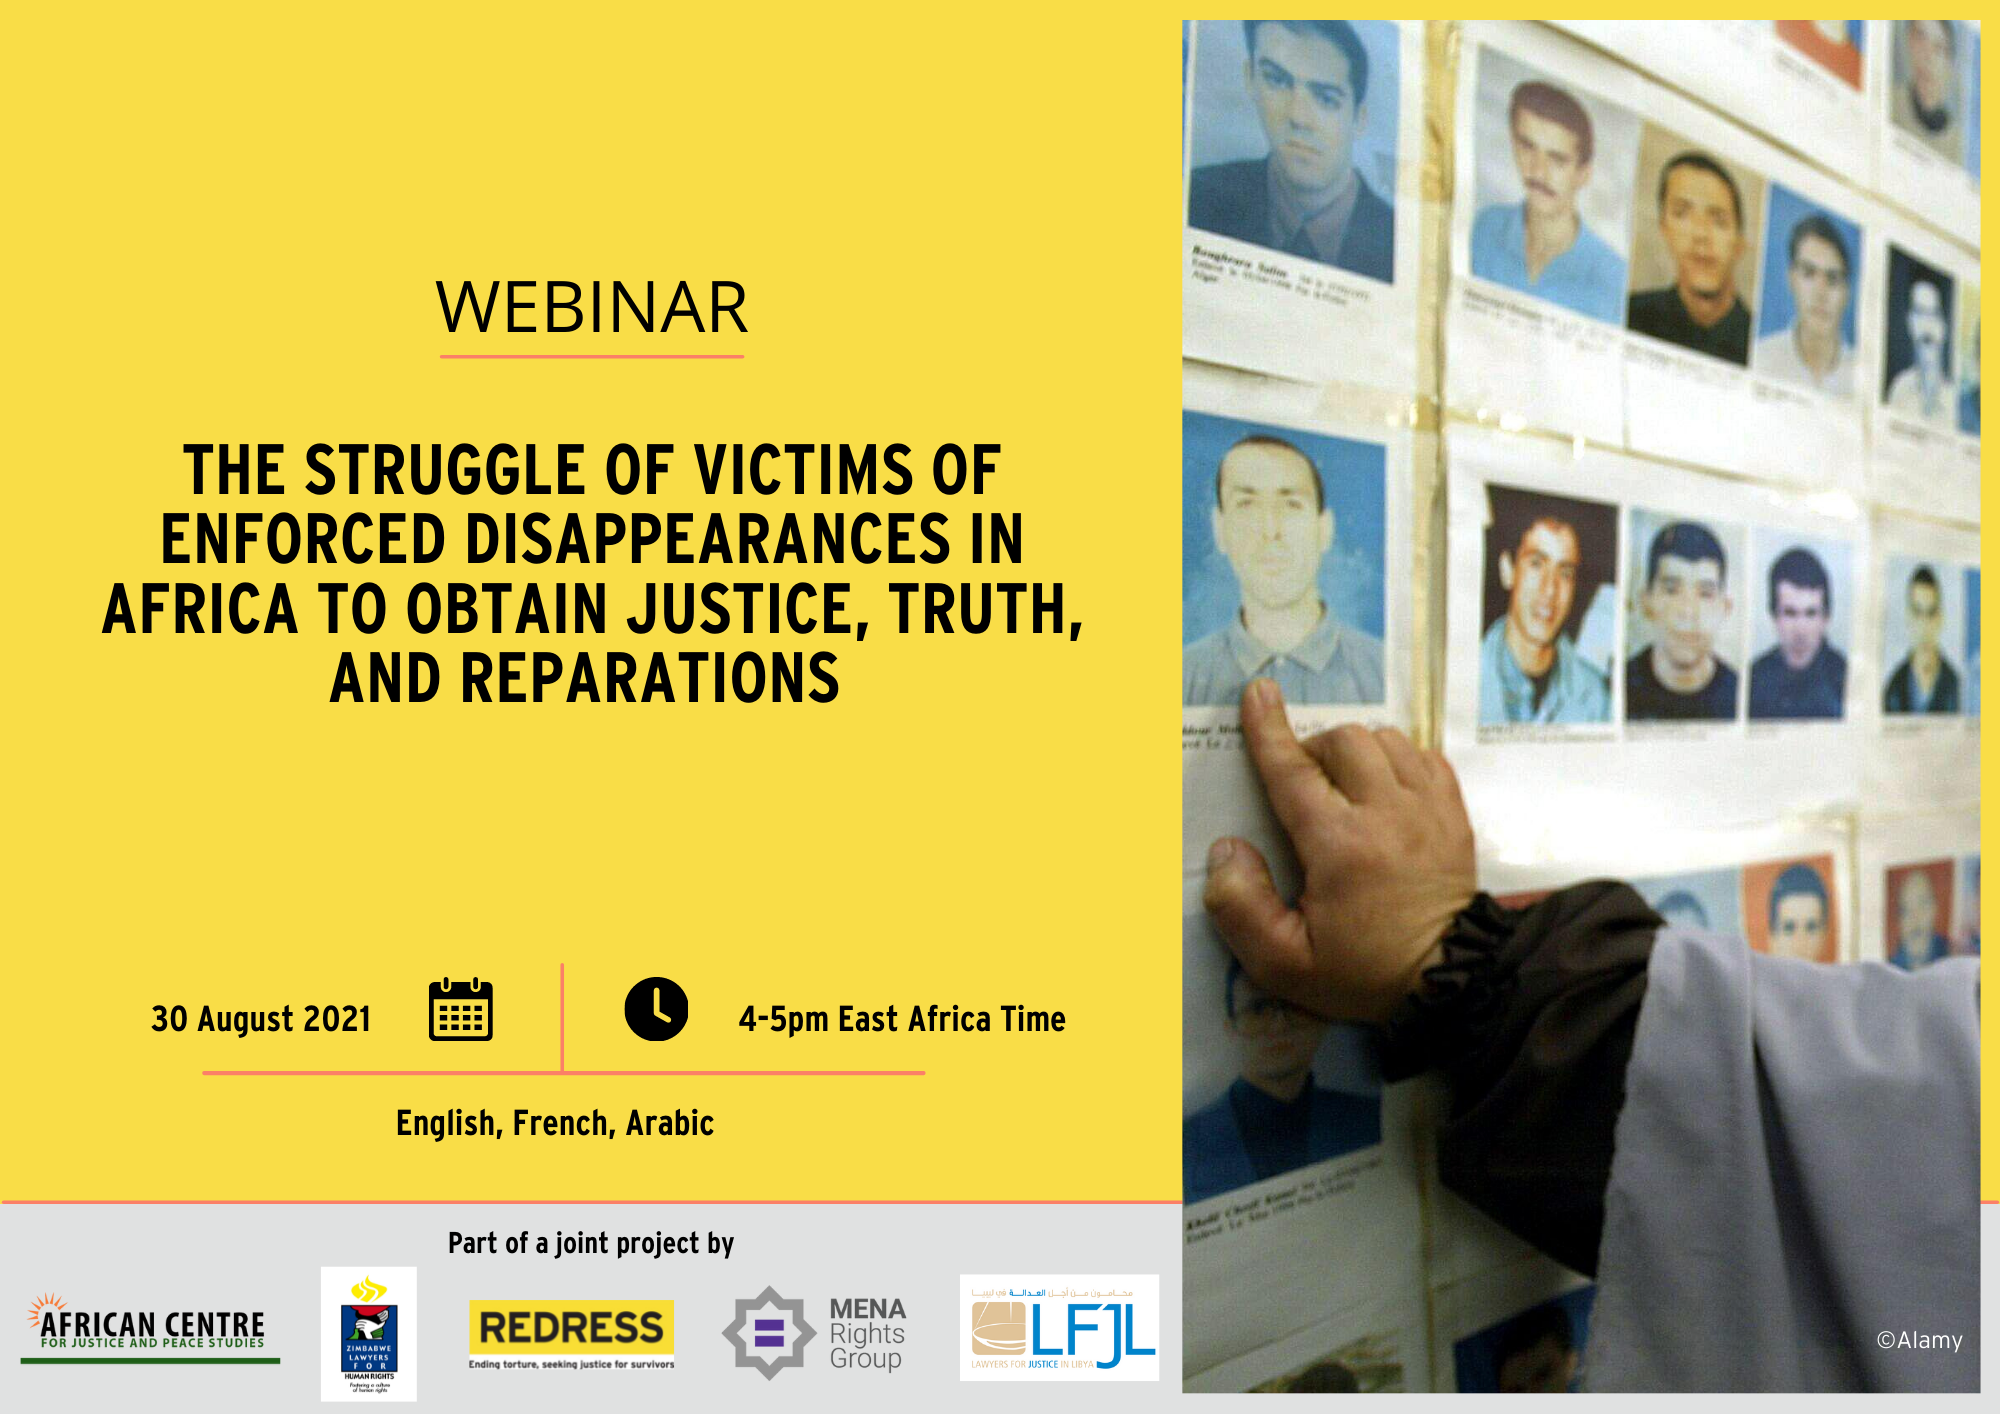 Recorded Webinar Available Now: The Struggle of Victims of Enforced Disappearances in Africa to Obtain Justice, Truth, and Reparations